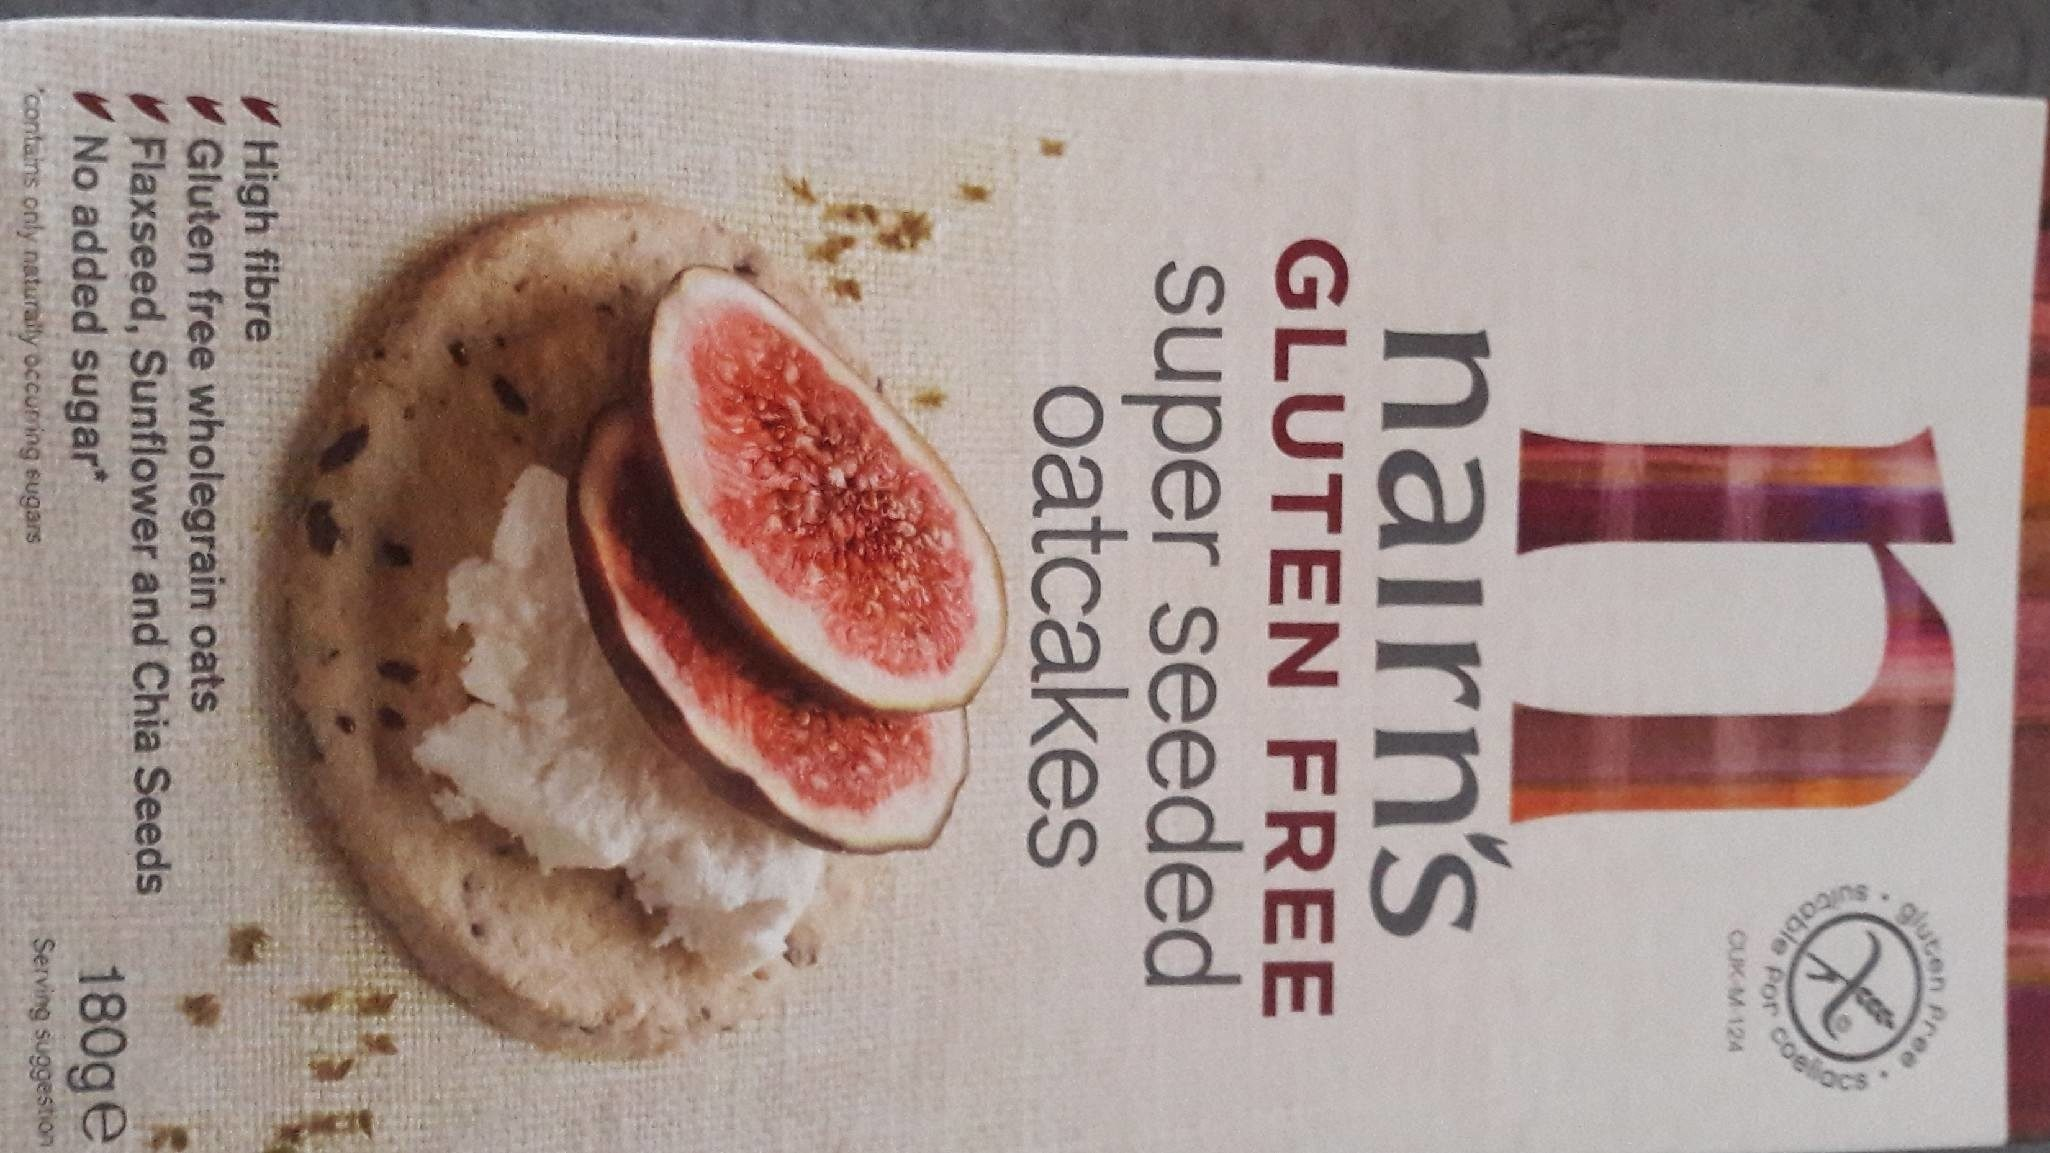 Gluten Free Super Seeded Oatcakes - Product